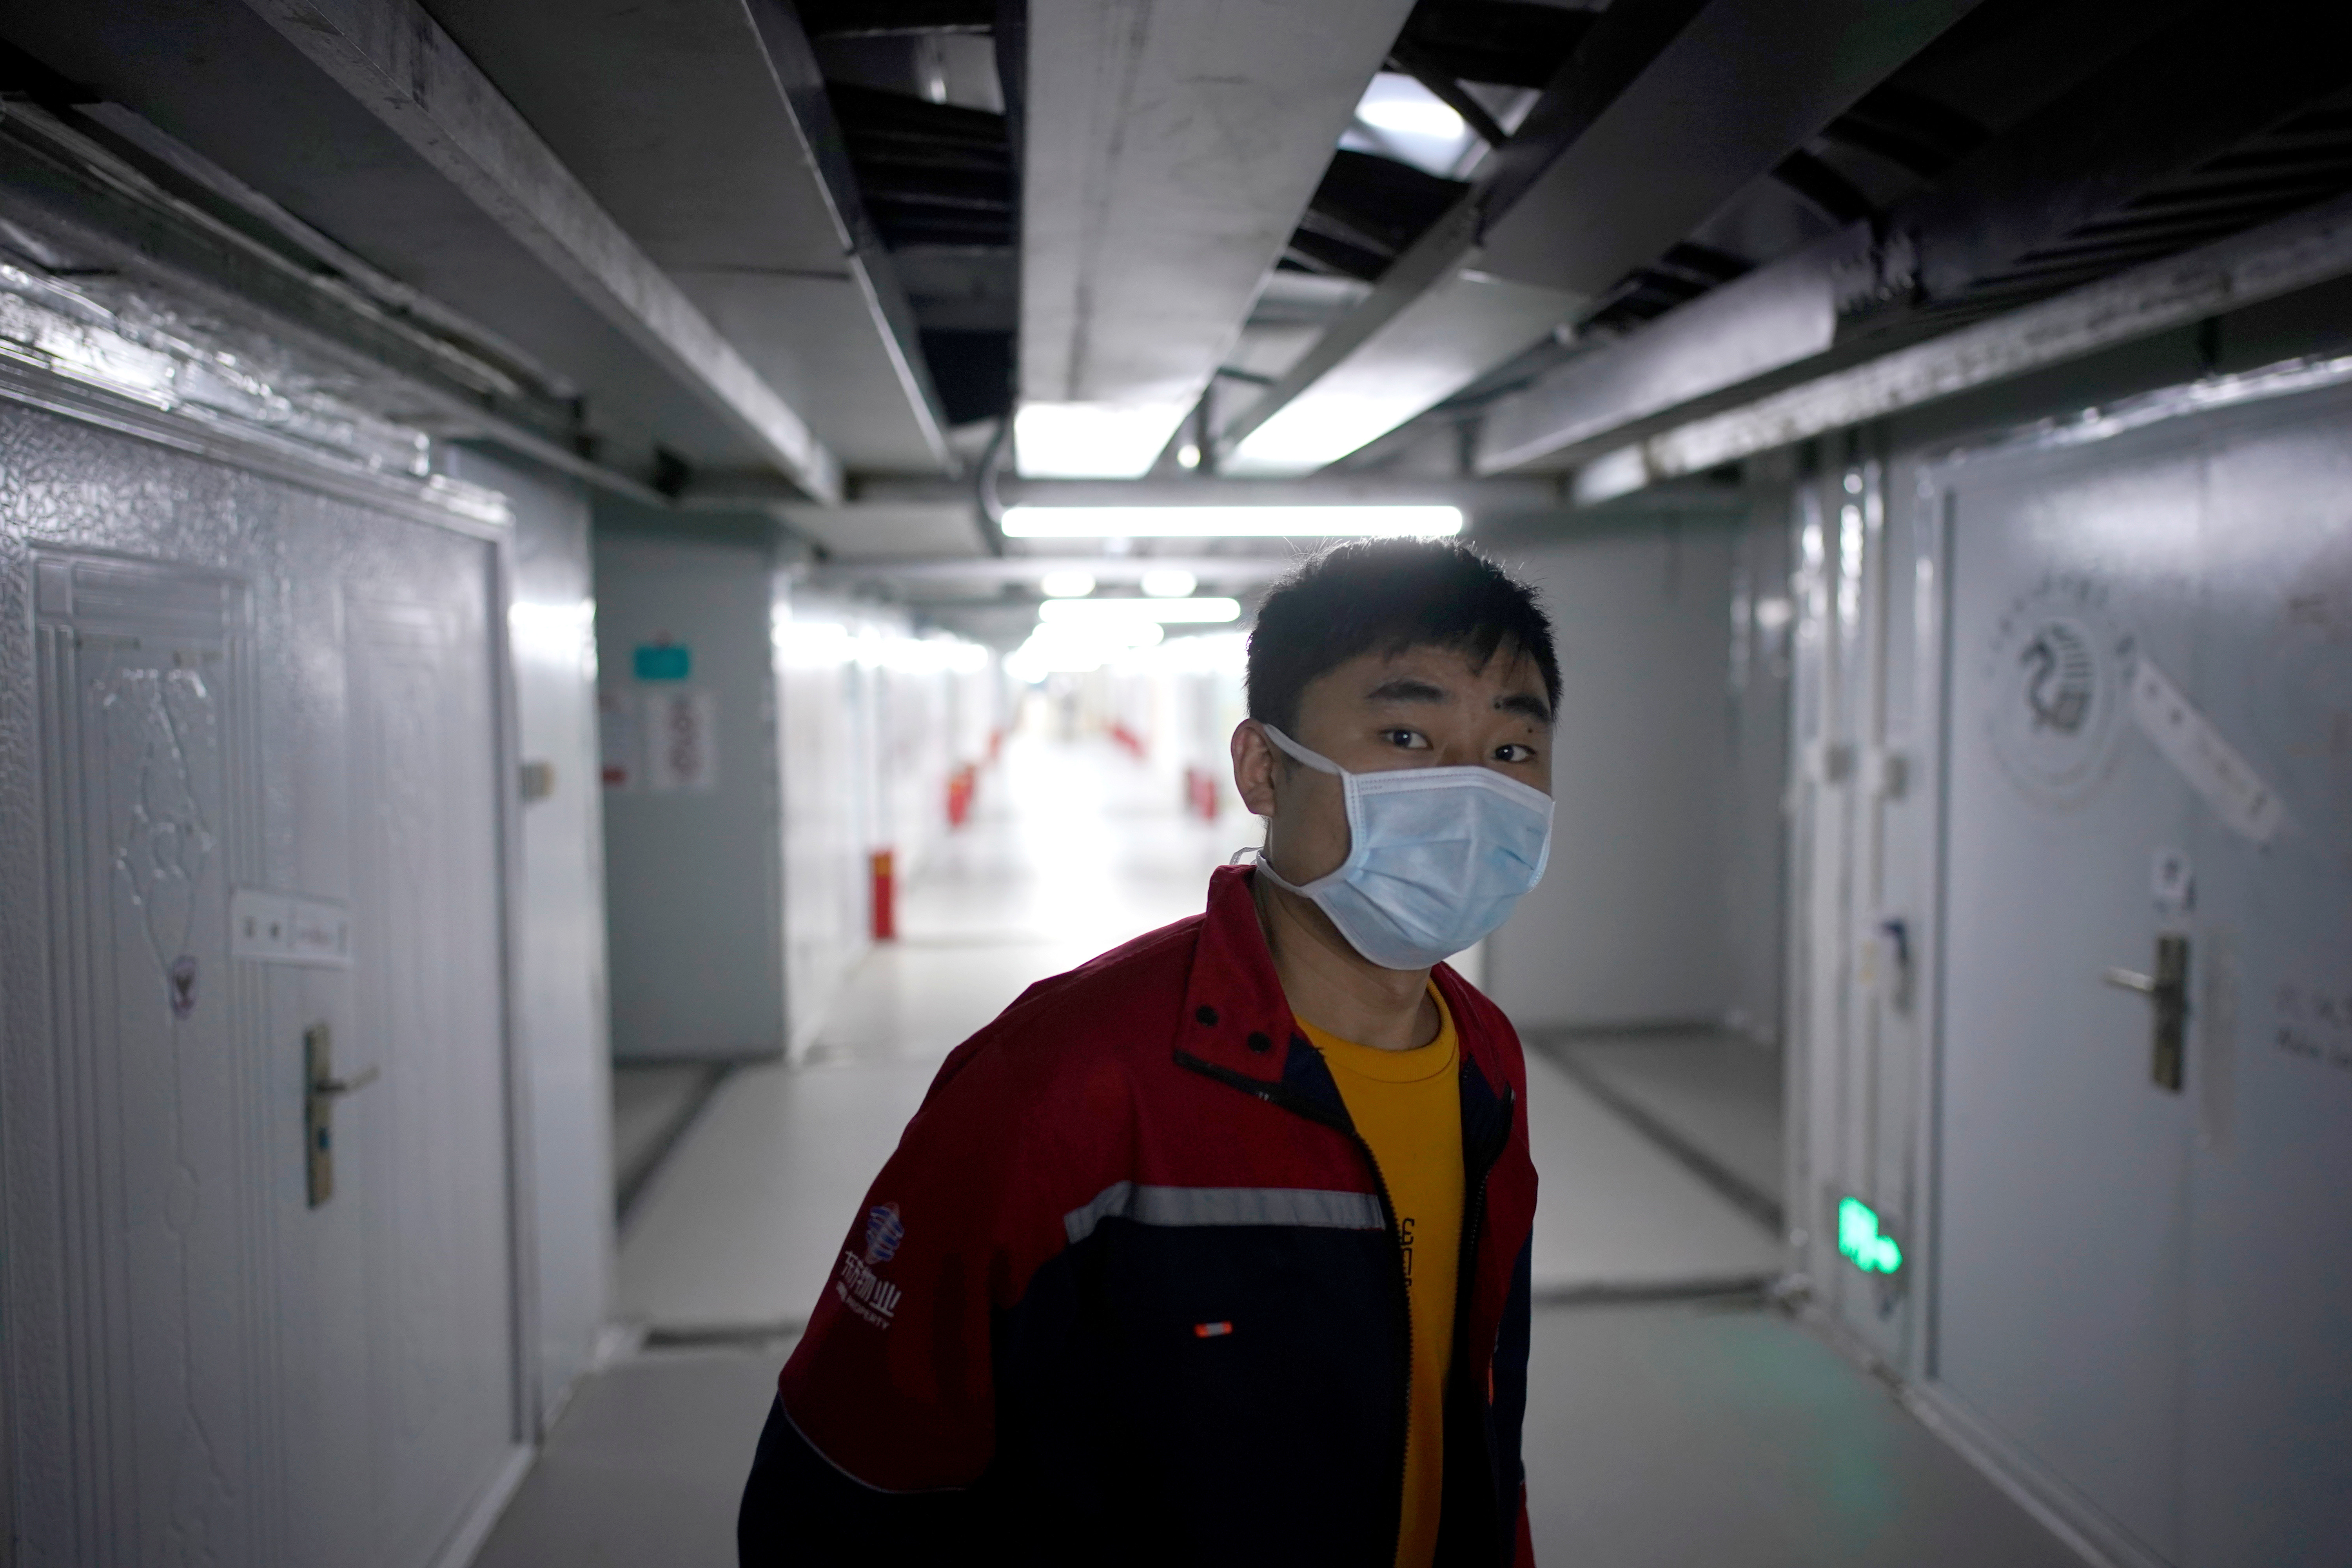 A staff member wearing a face mask is seen near closed wards inside the Leishenshan Hospital, a makeshift hospital for treating patients with the coronavirus disease (COVID-19), in Wuhan, Hubei province, China April 11, 2020. REUTERS/Aly Song - RC242G9XKX57